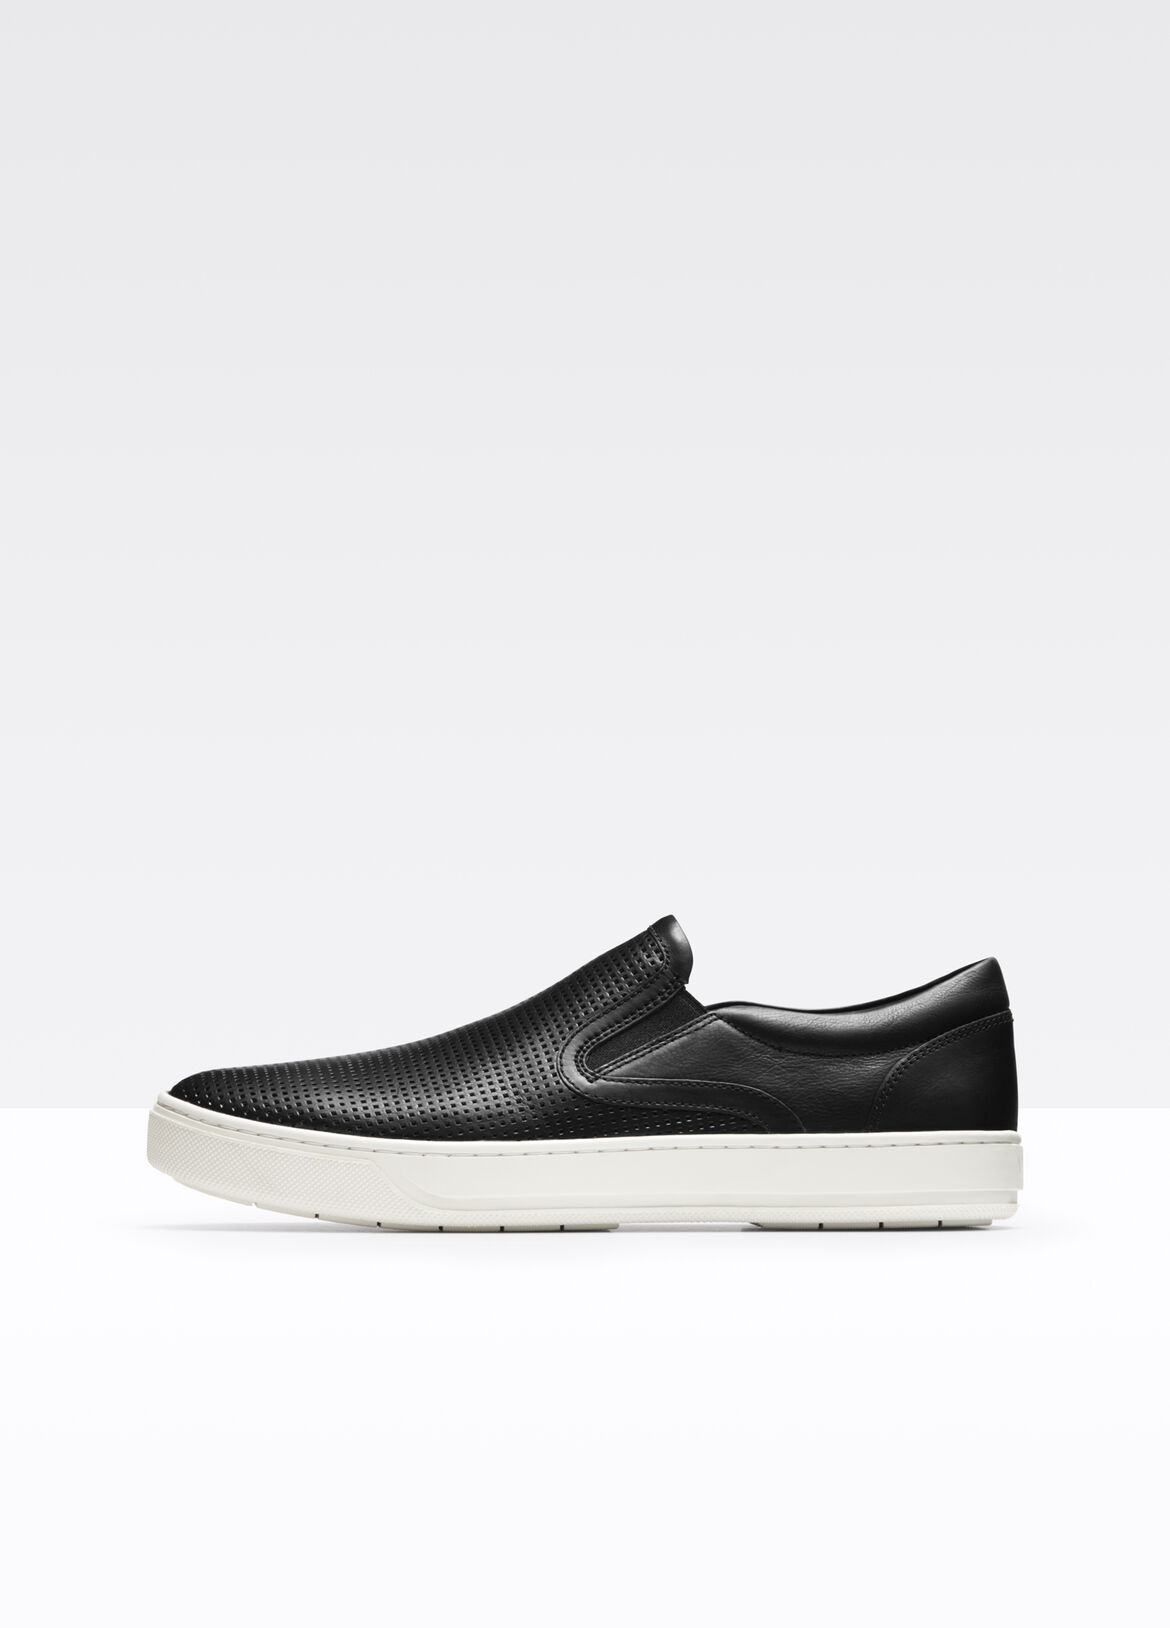 Blocked with contrasting perforated and smooth Italian leather; signature slip-on sneaker set on a thick rubber sole.